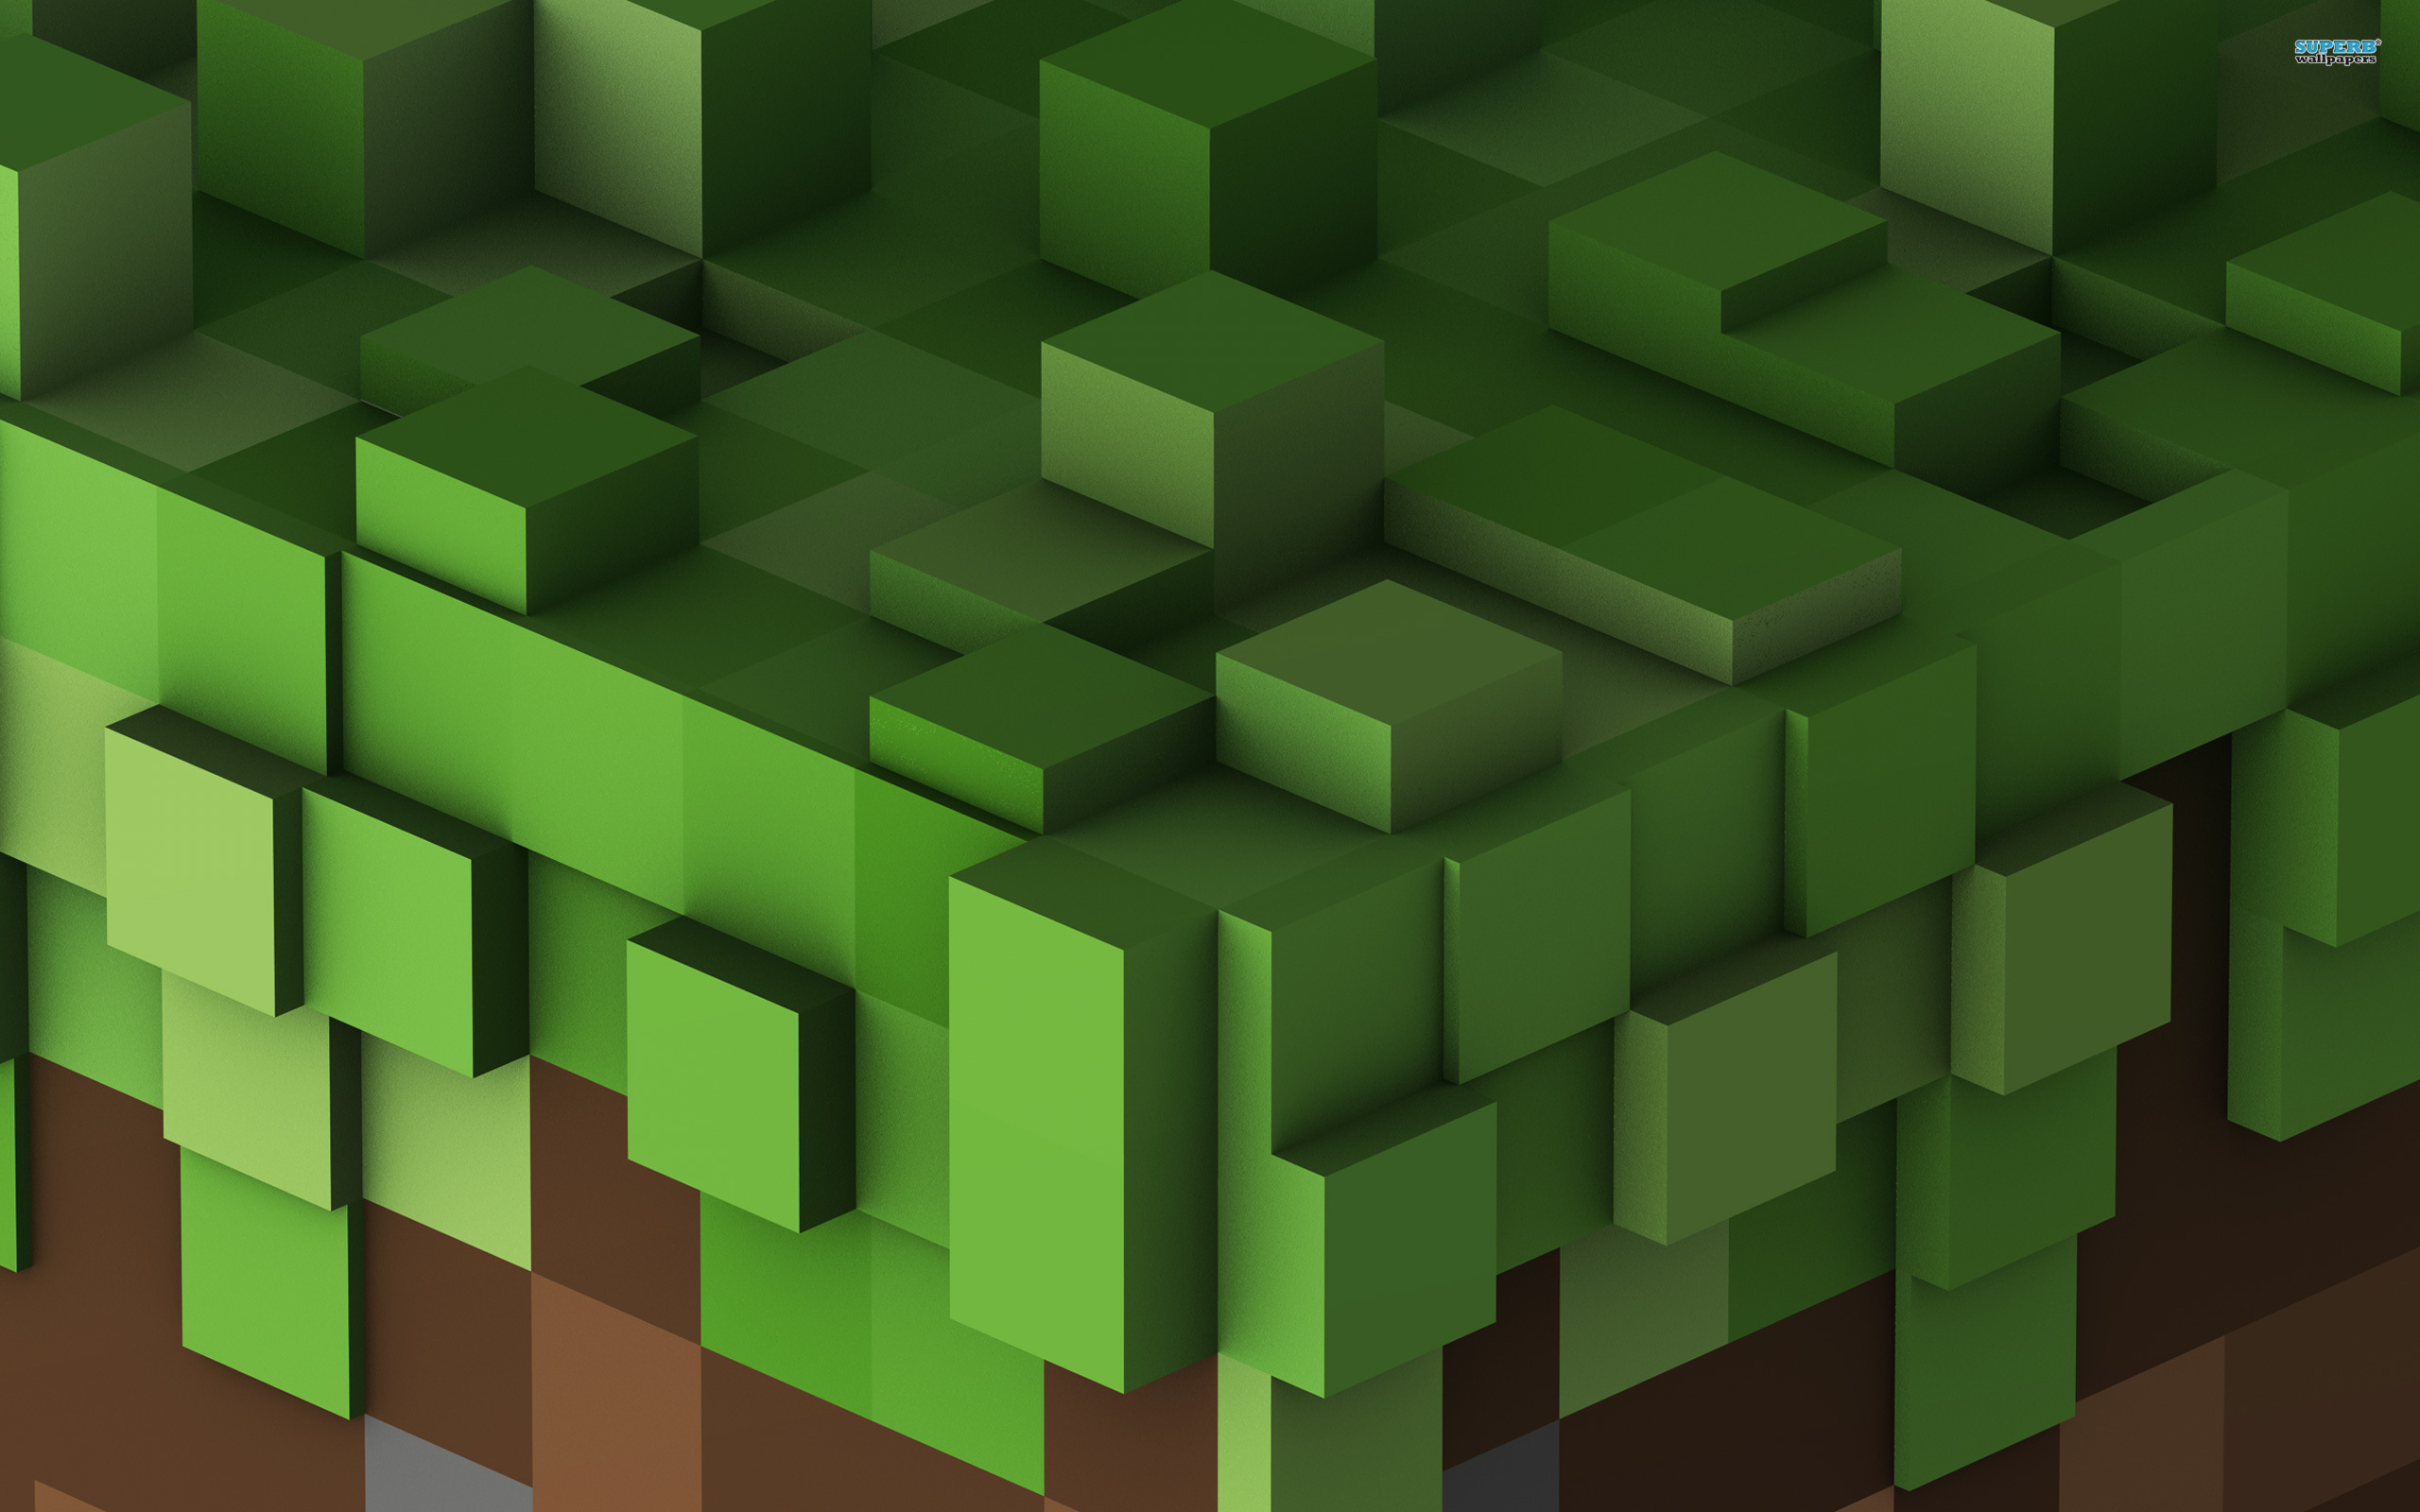 Minecraft We Are Giving Away 4 Hd Minecraft Wallpapers Minecraft Background 2560x1600 Download Hd Wallpaper Wallpapertip